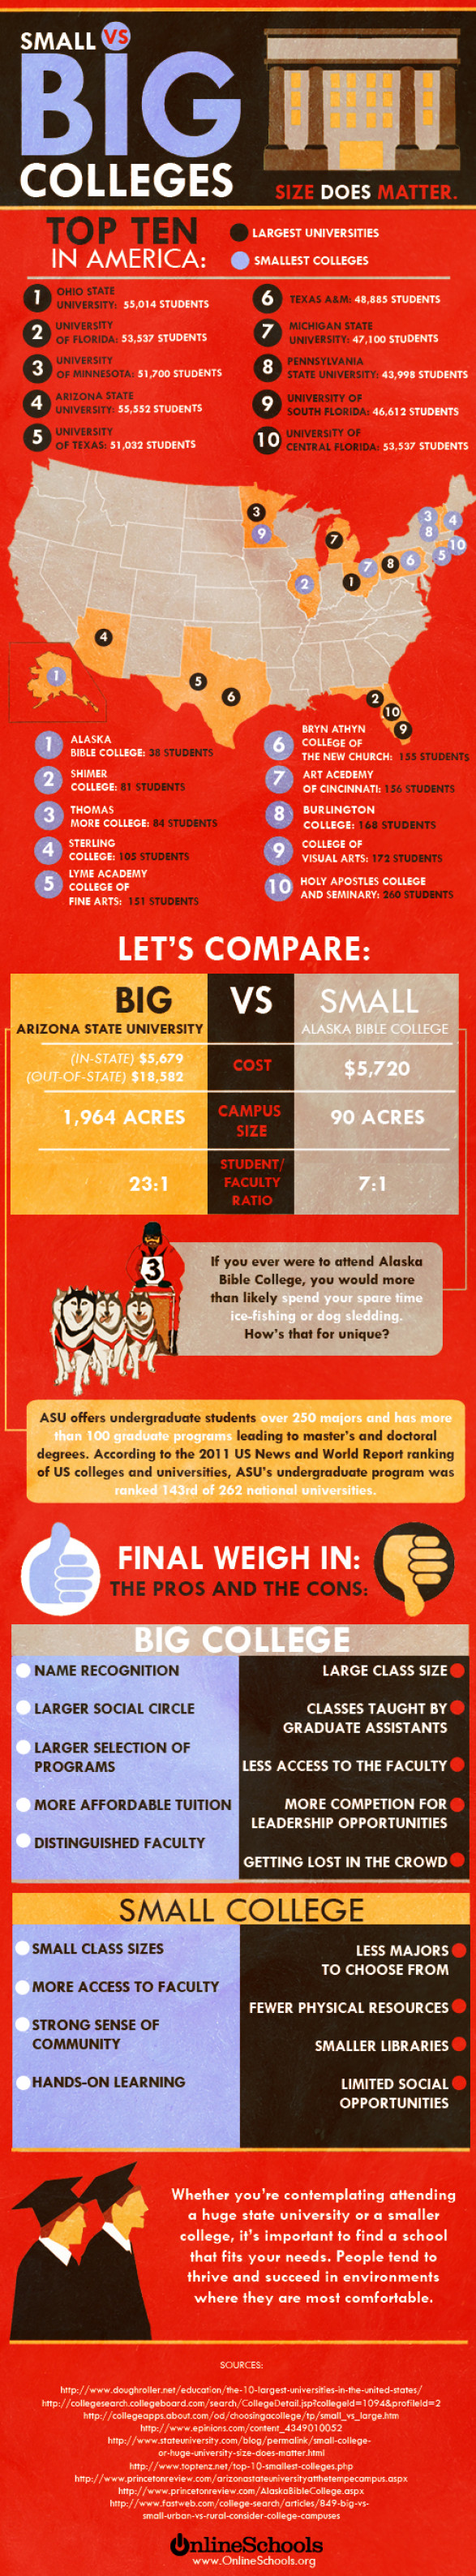 Small vs. Big Colleges